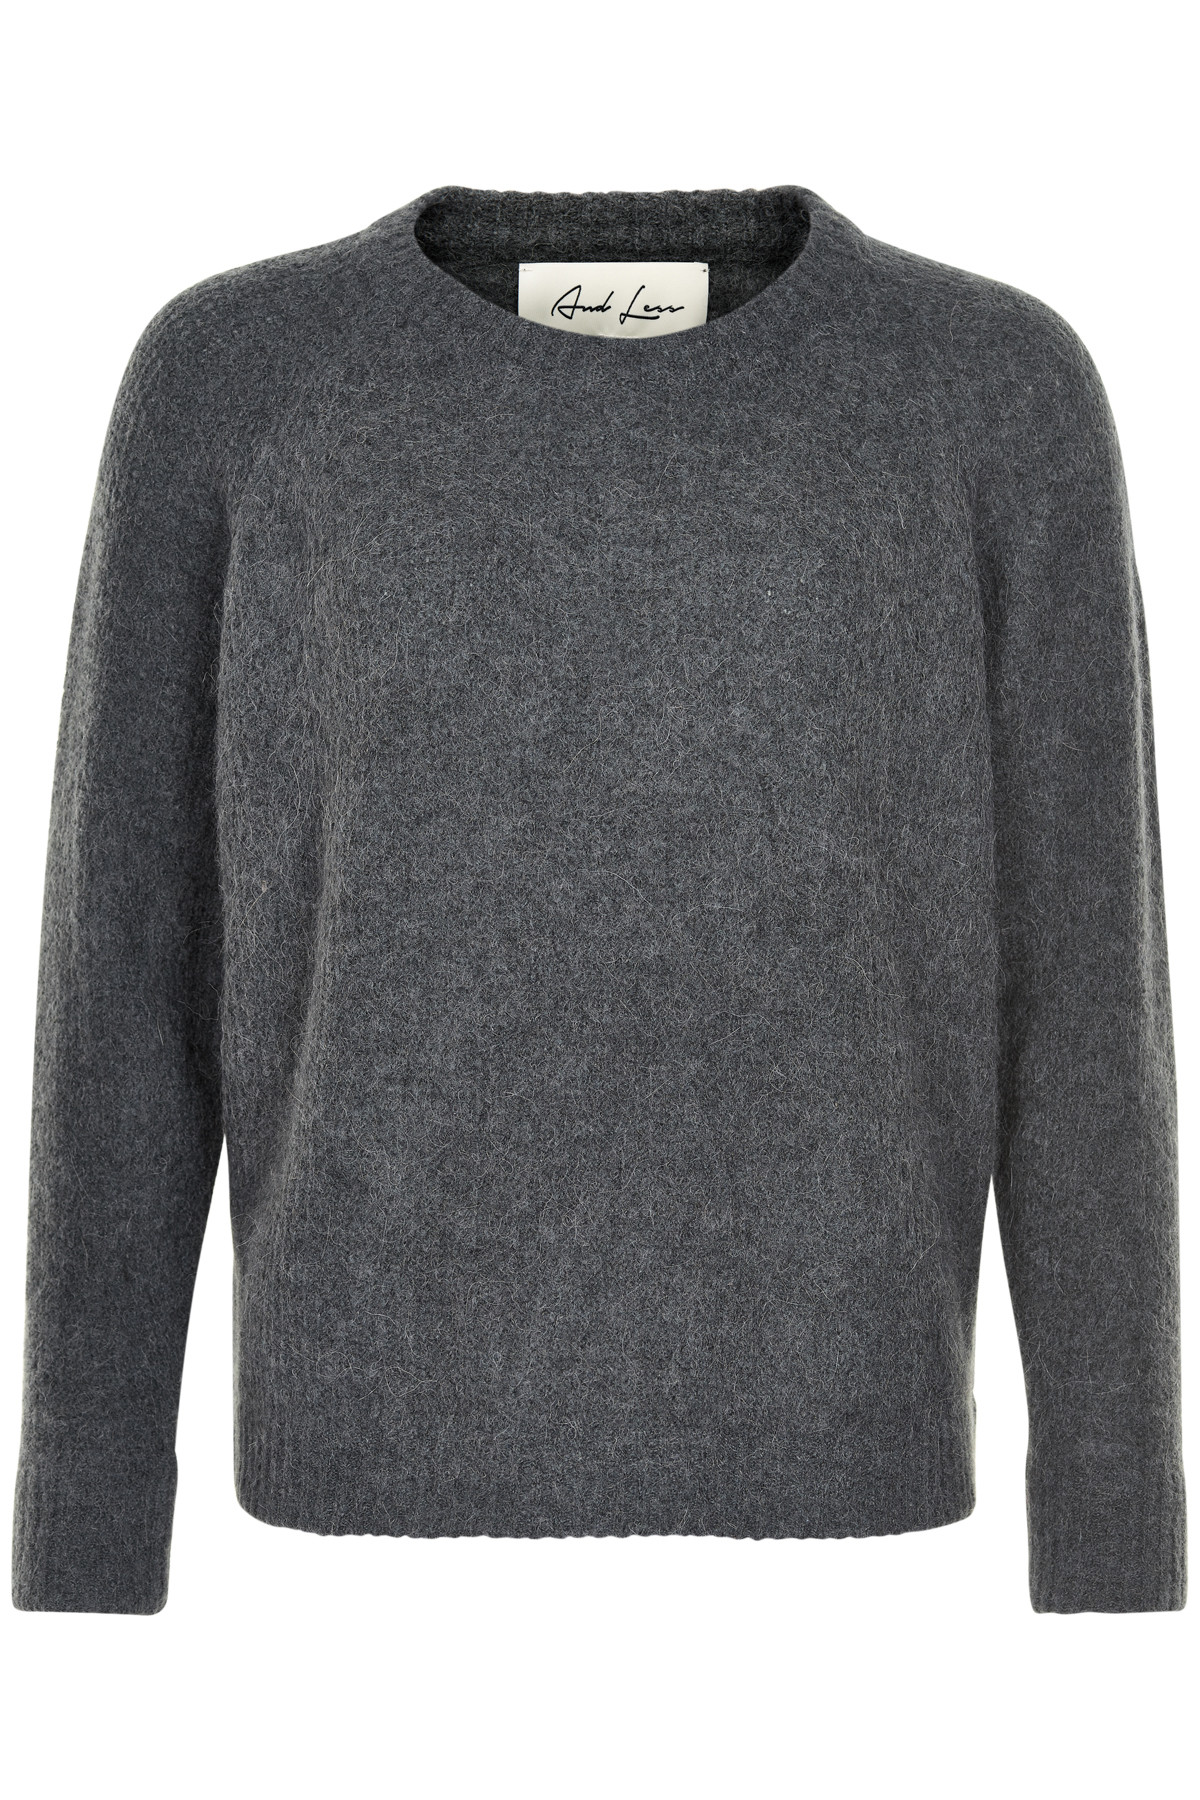 Image of   AND LESS ALBAMBINA SWEATER 5519211 F (Folkstone, L)